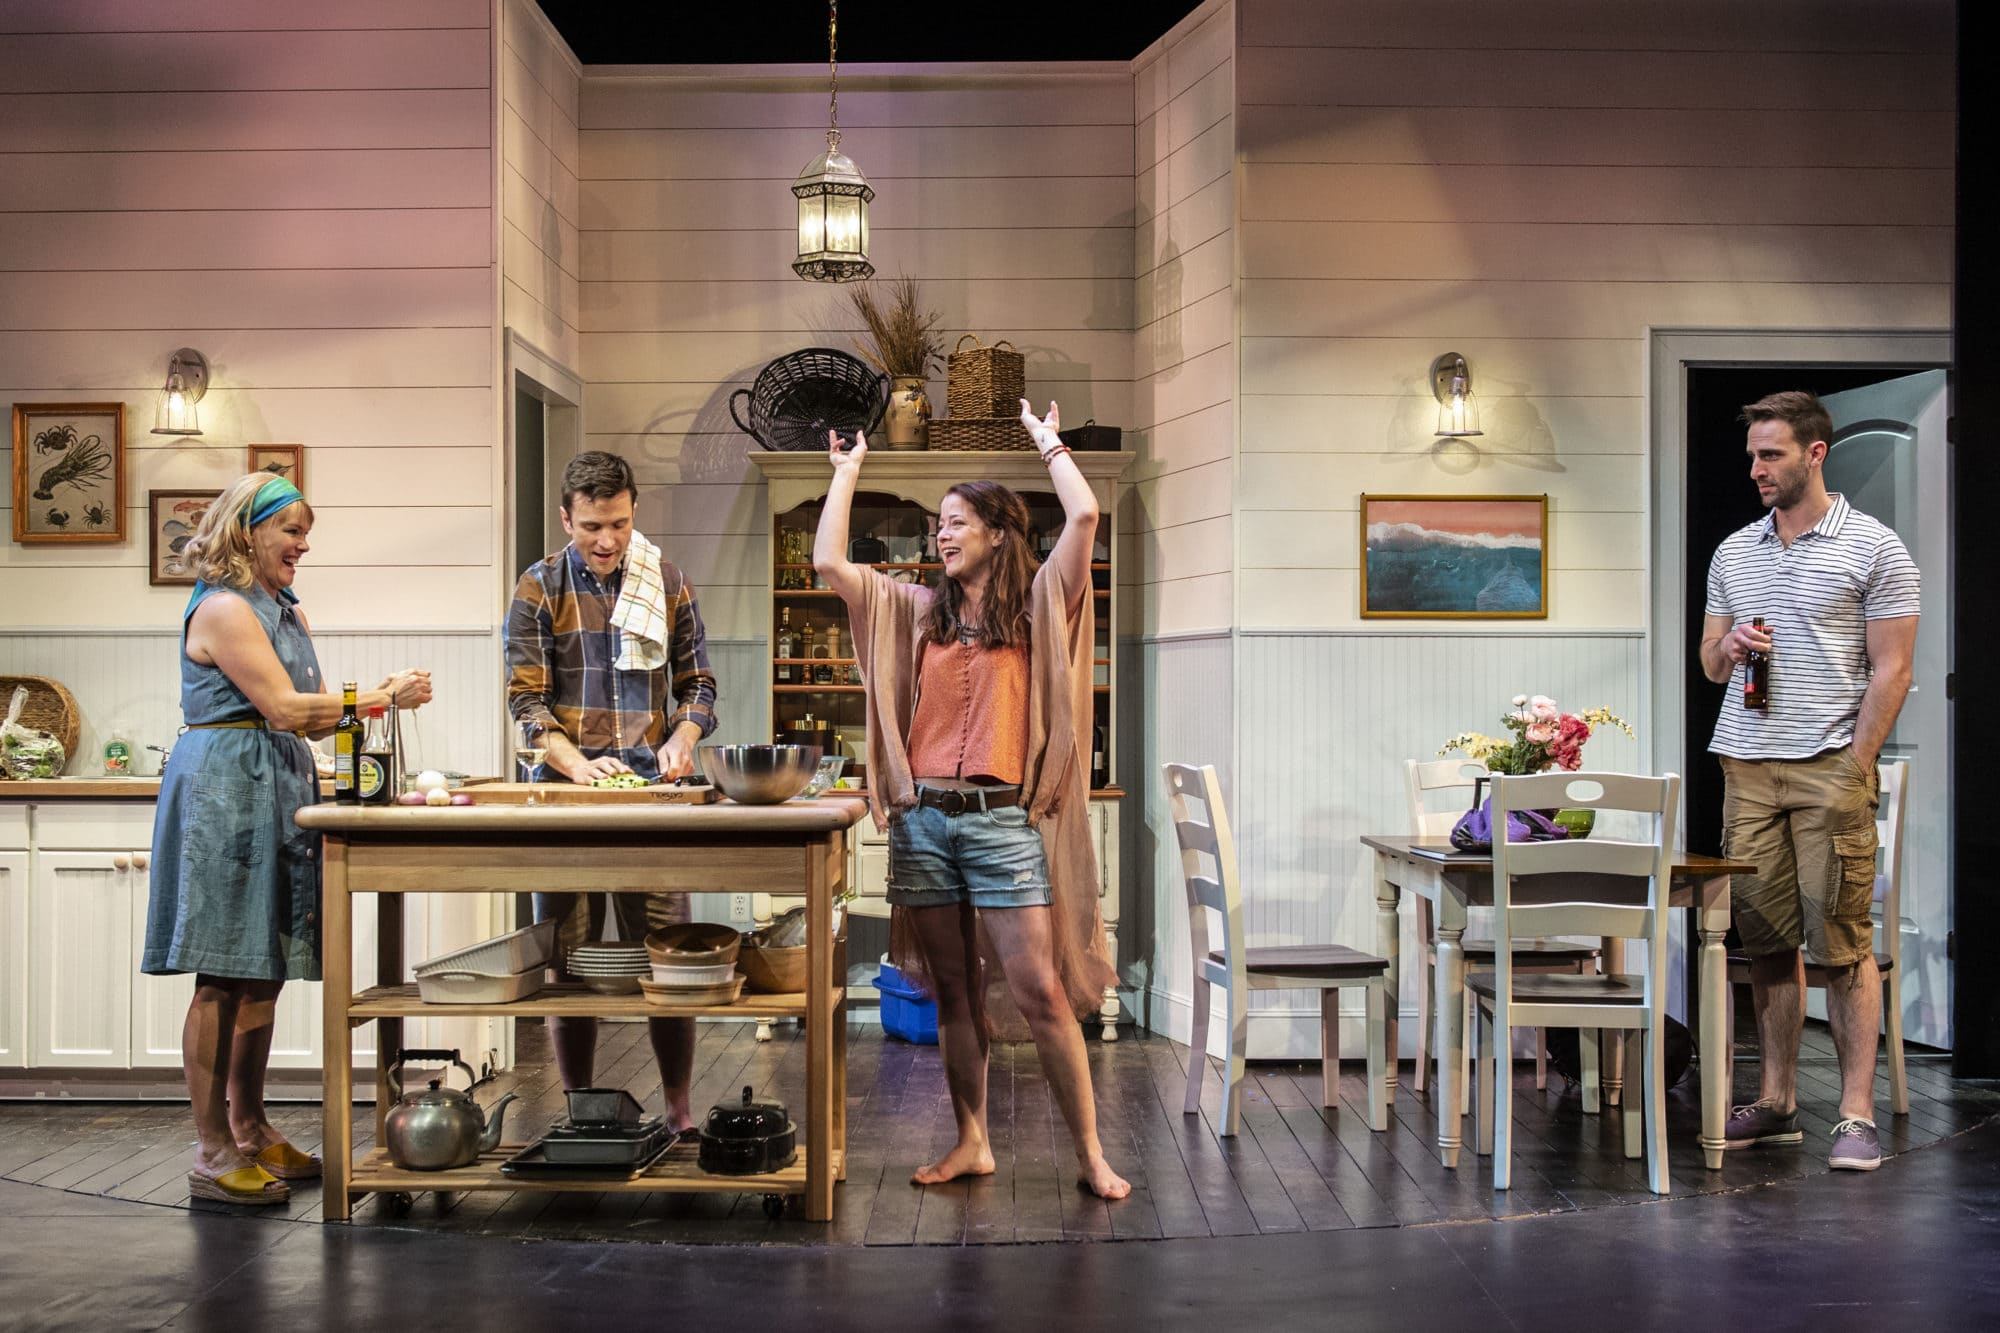 Beth Hylton, M. Scott McLean, Megan Anderson, and Danny Gavigan in 'Dinner with Friends.' Photo by Teresa Castracane.